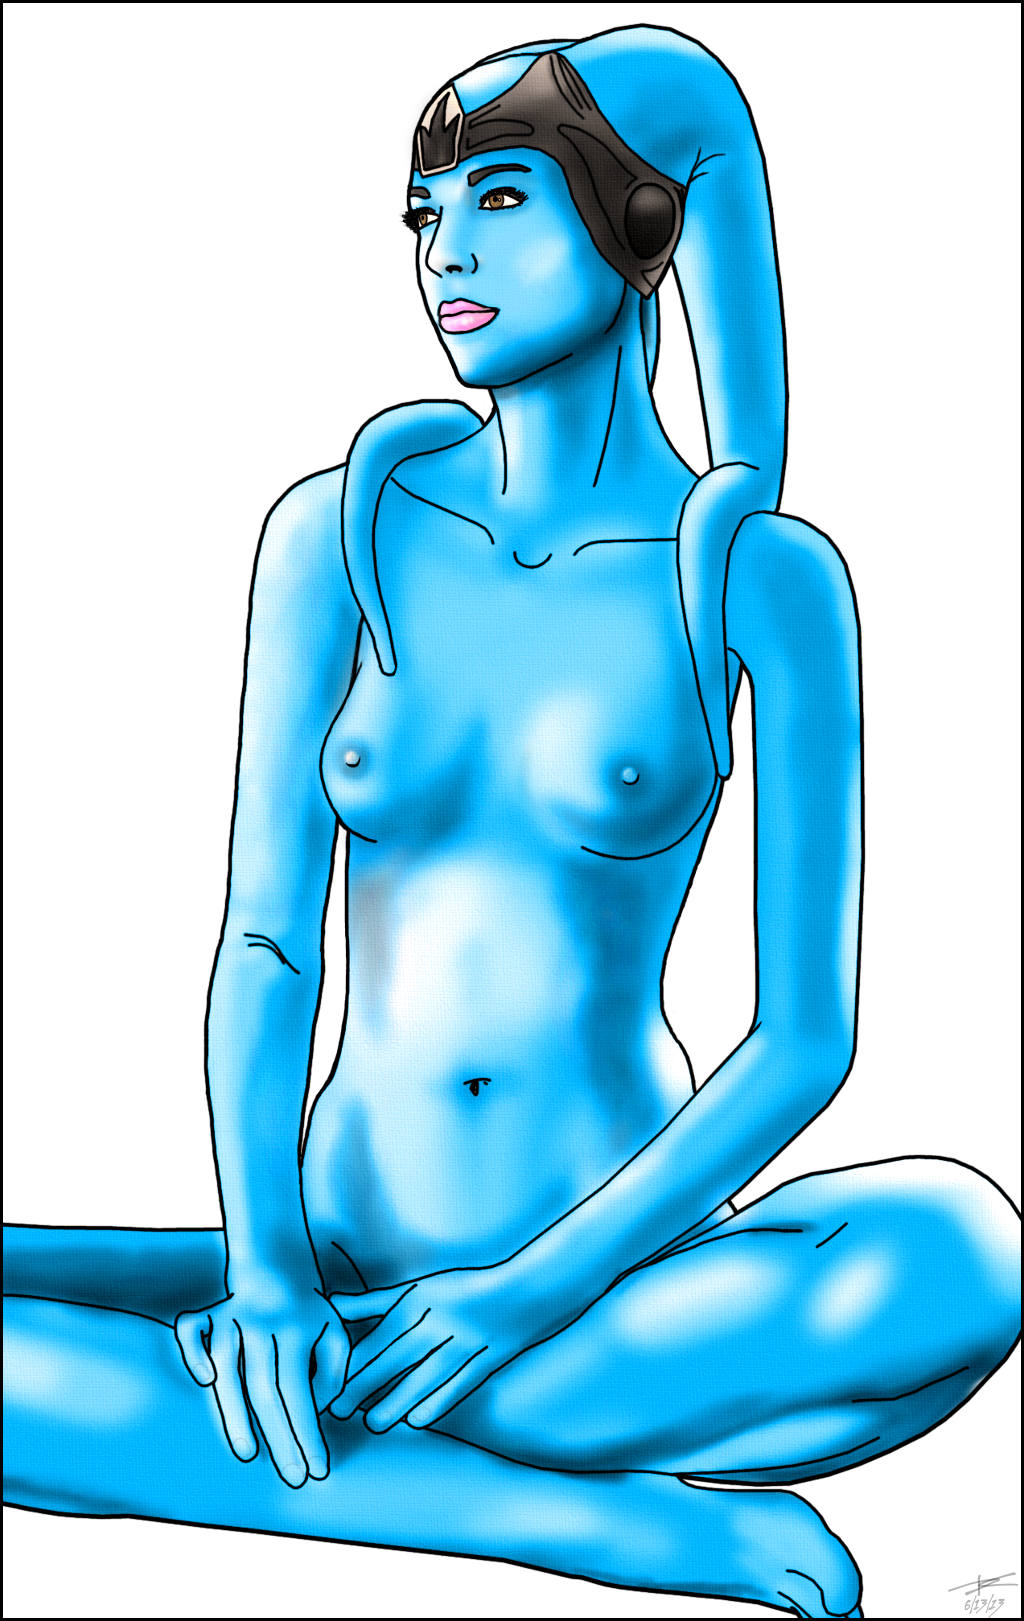 aayla nude star secura wars List of vocaloids with pictures